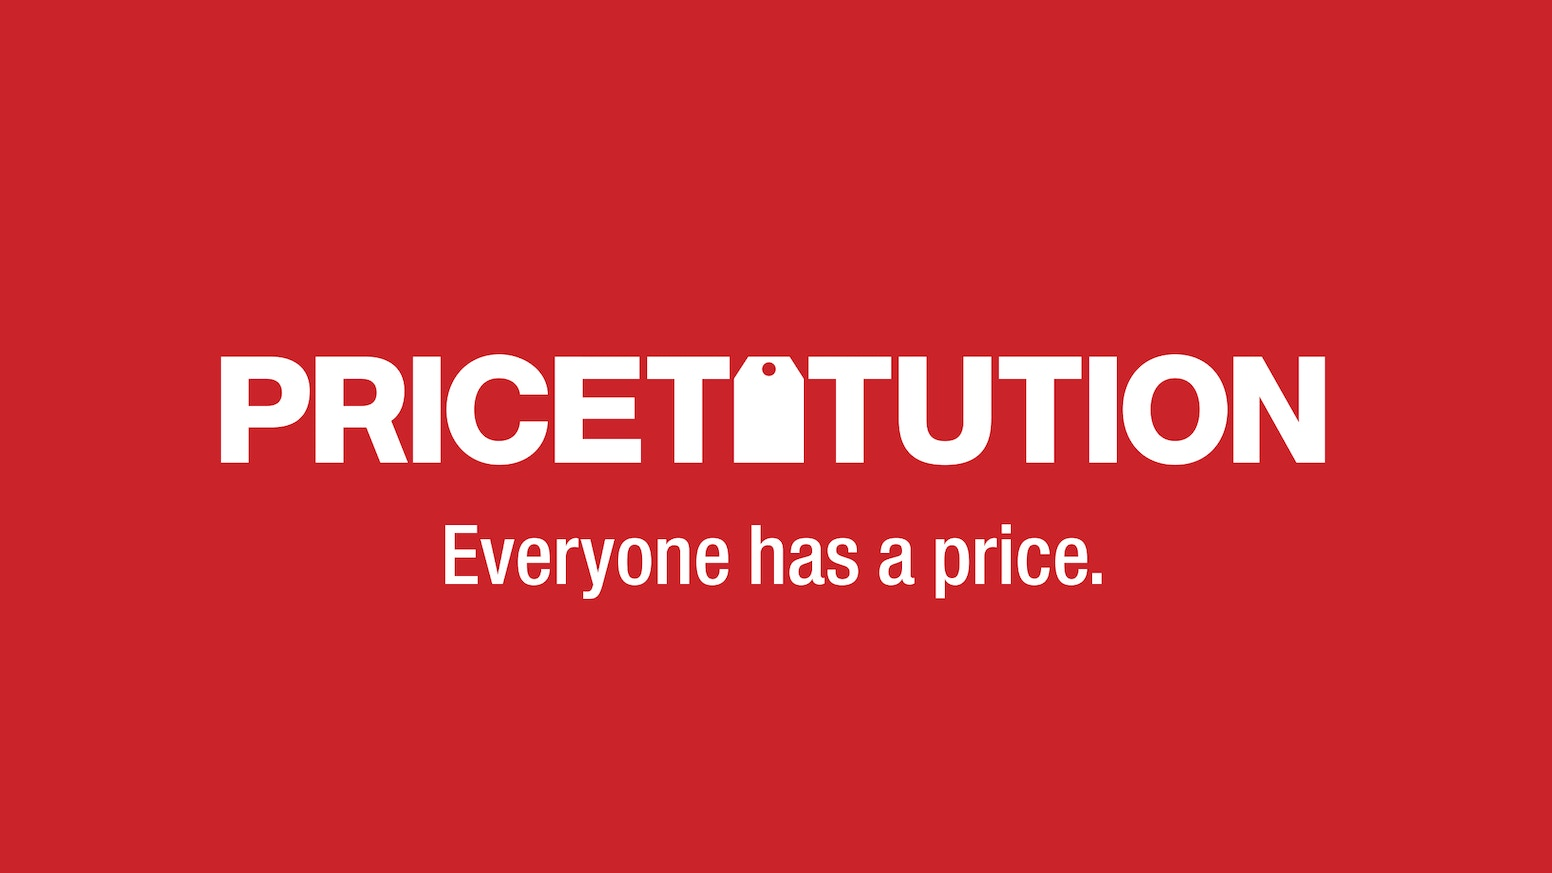 A card game where you guess how much money it would take your friends to do ridiculous things.  Pricetitution - Everyone has a price. MISSED THE KICKSTARTER? CLICK THE BLUE BUTTON BELOW!